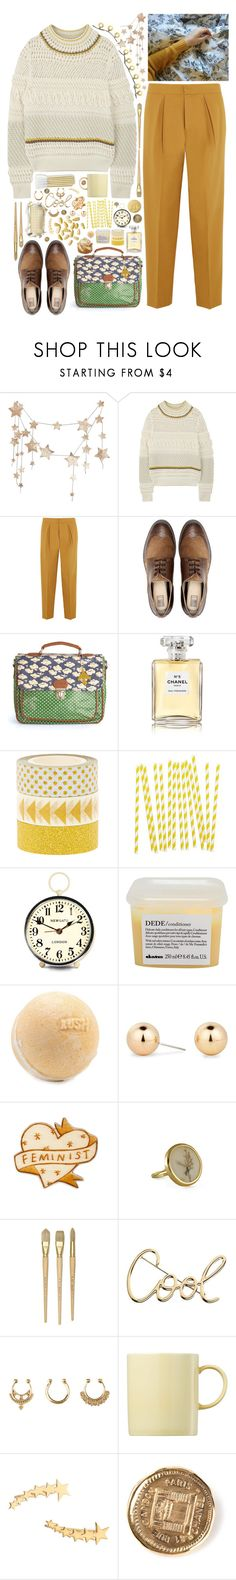 """Без названия #420"" by pepsichild ❤ liked on Polyvore featuring Chloé, Issa, Pull&Bear, Chanel, My Little Day, Newgate, Davines, Principles by Ben de Lisi, Lanvin and Charlotte Russe"